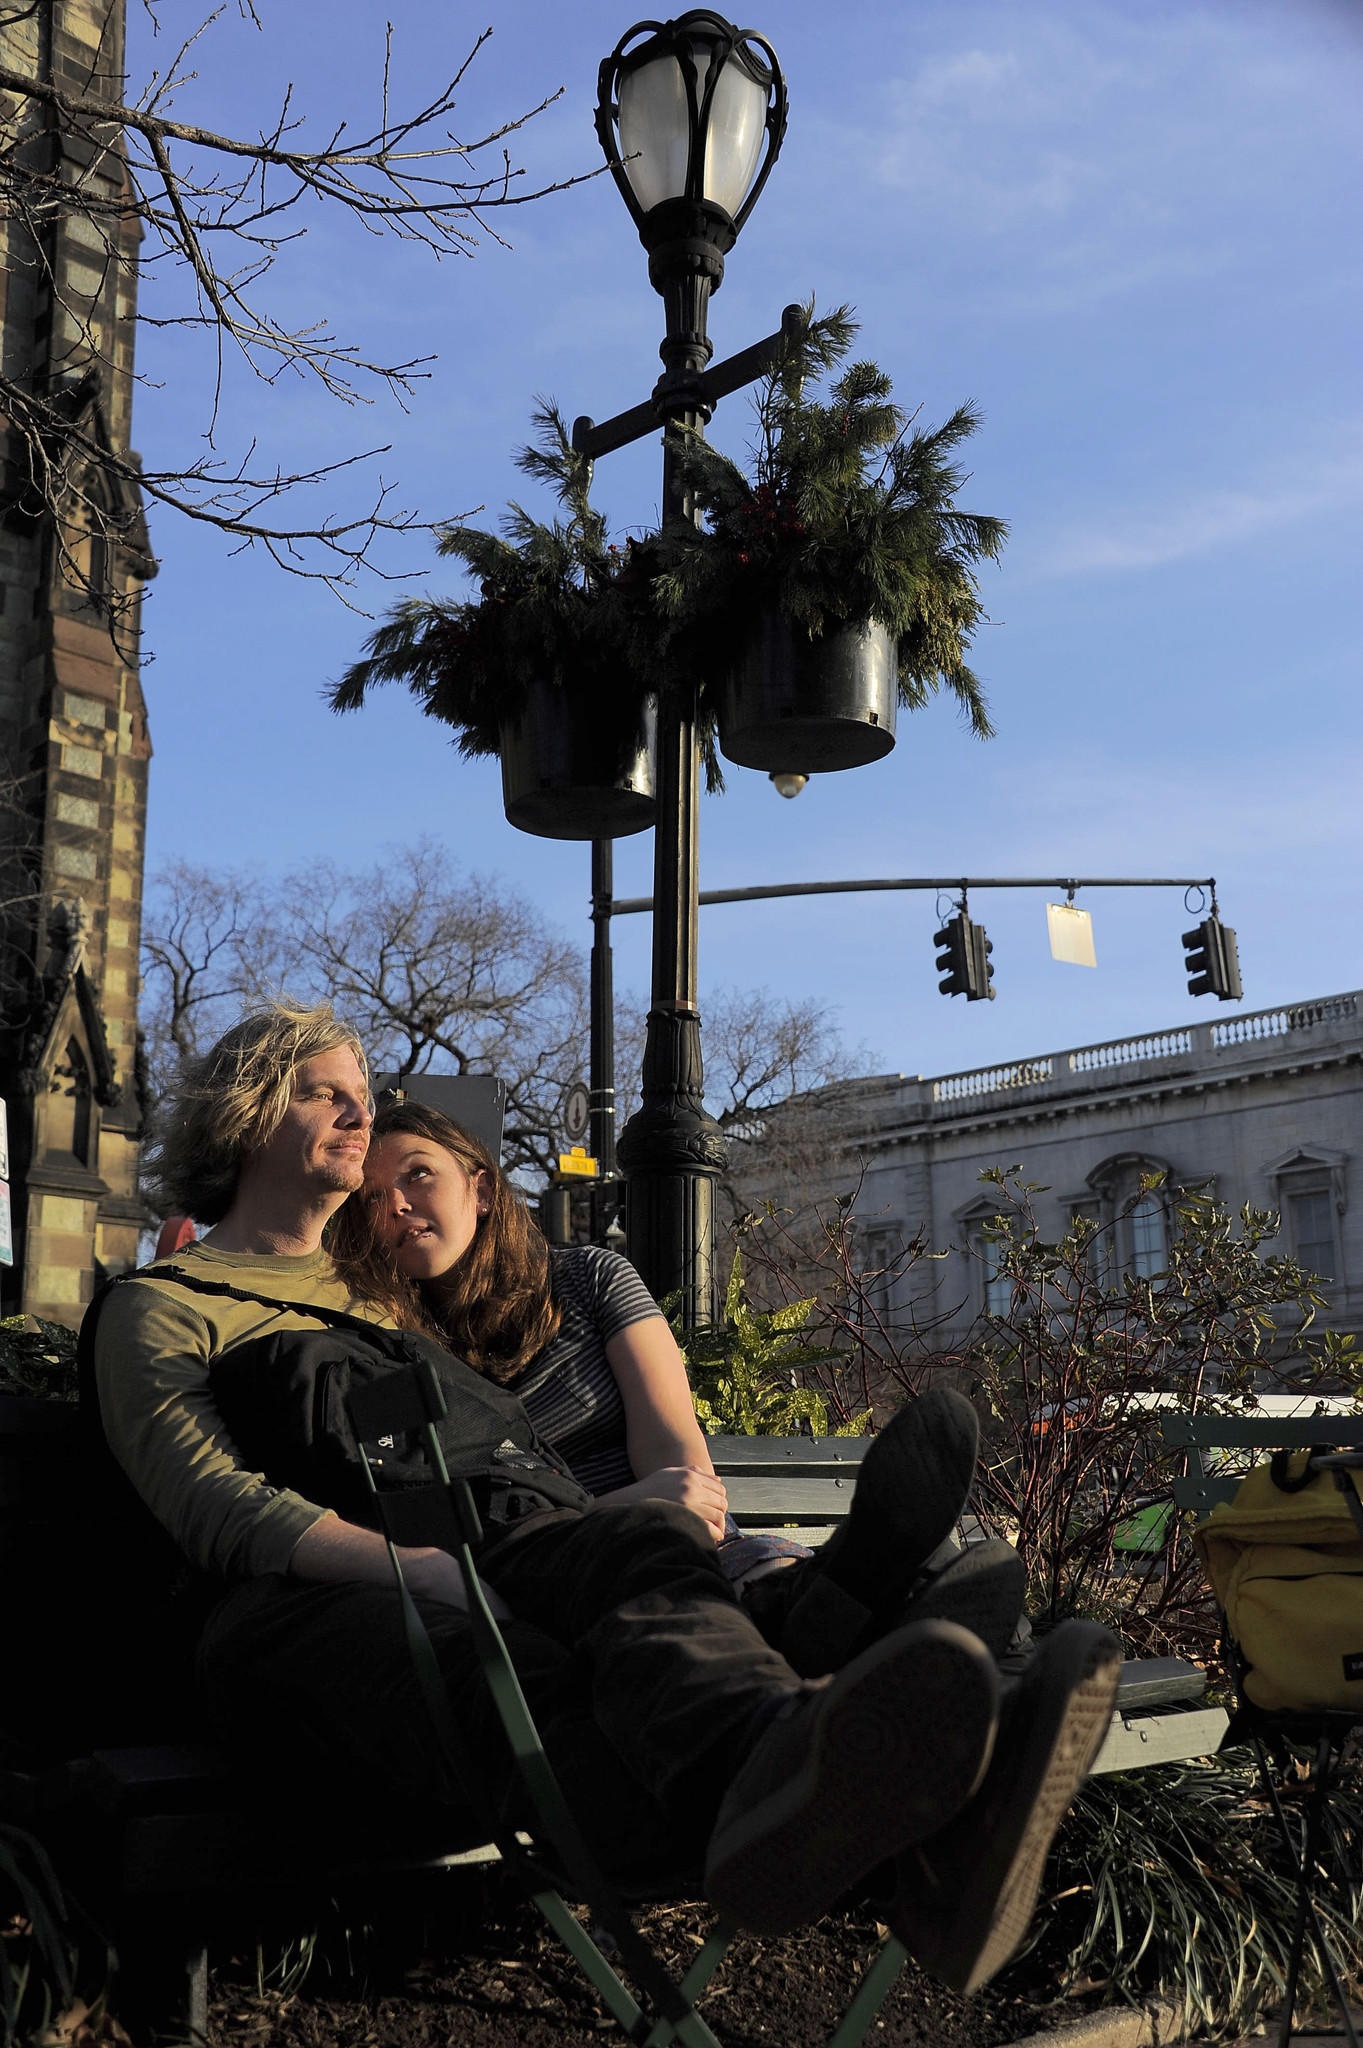 The only clues that this is the first day of winter are the lack of leaves on the trees and the installation of holiday evergreens above Joseph Young and Amanda McCormick of Baltimore, who enjoy the Winter Solstice with an unofficial temperature in the 70s at Mount Vernon Place.